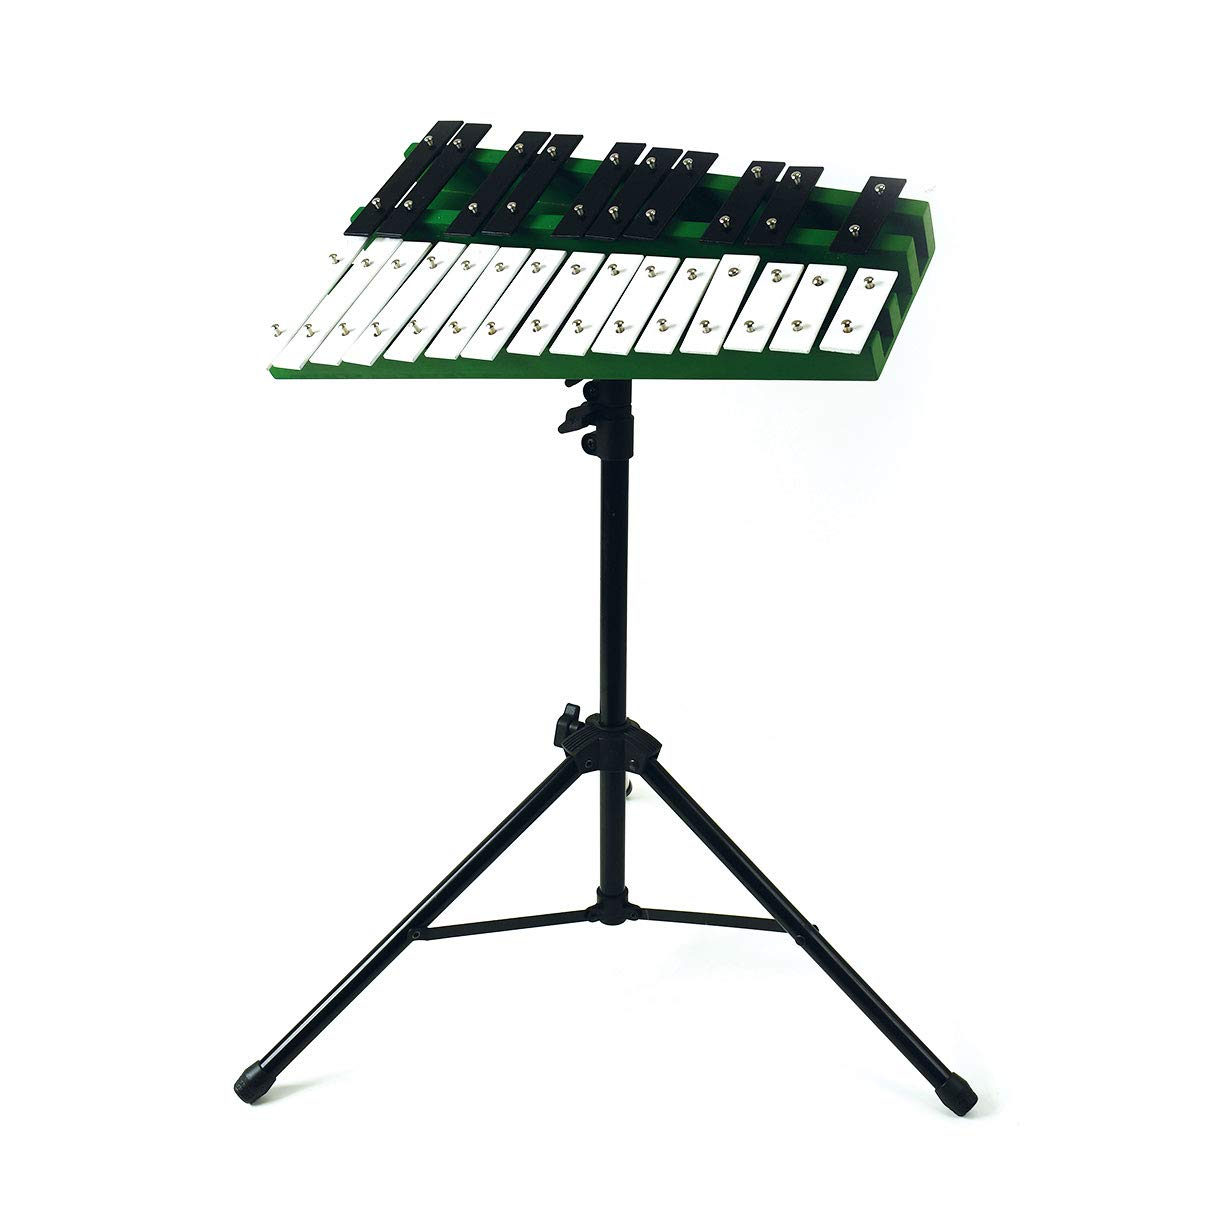 Professional Green Wooden Soprano Glockenspiel Xylophone on Stand with 25 Metal Keys - Includes Xylophone, Stand, Case, Beaters